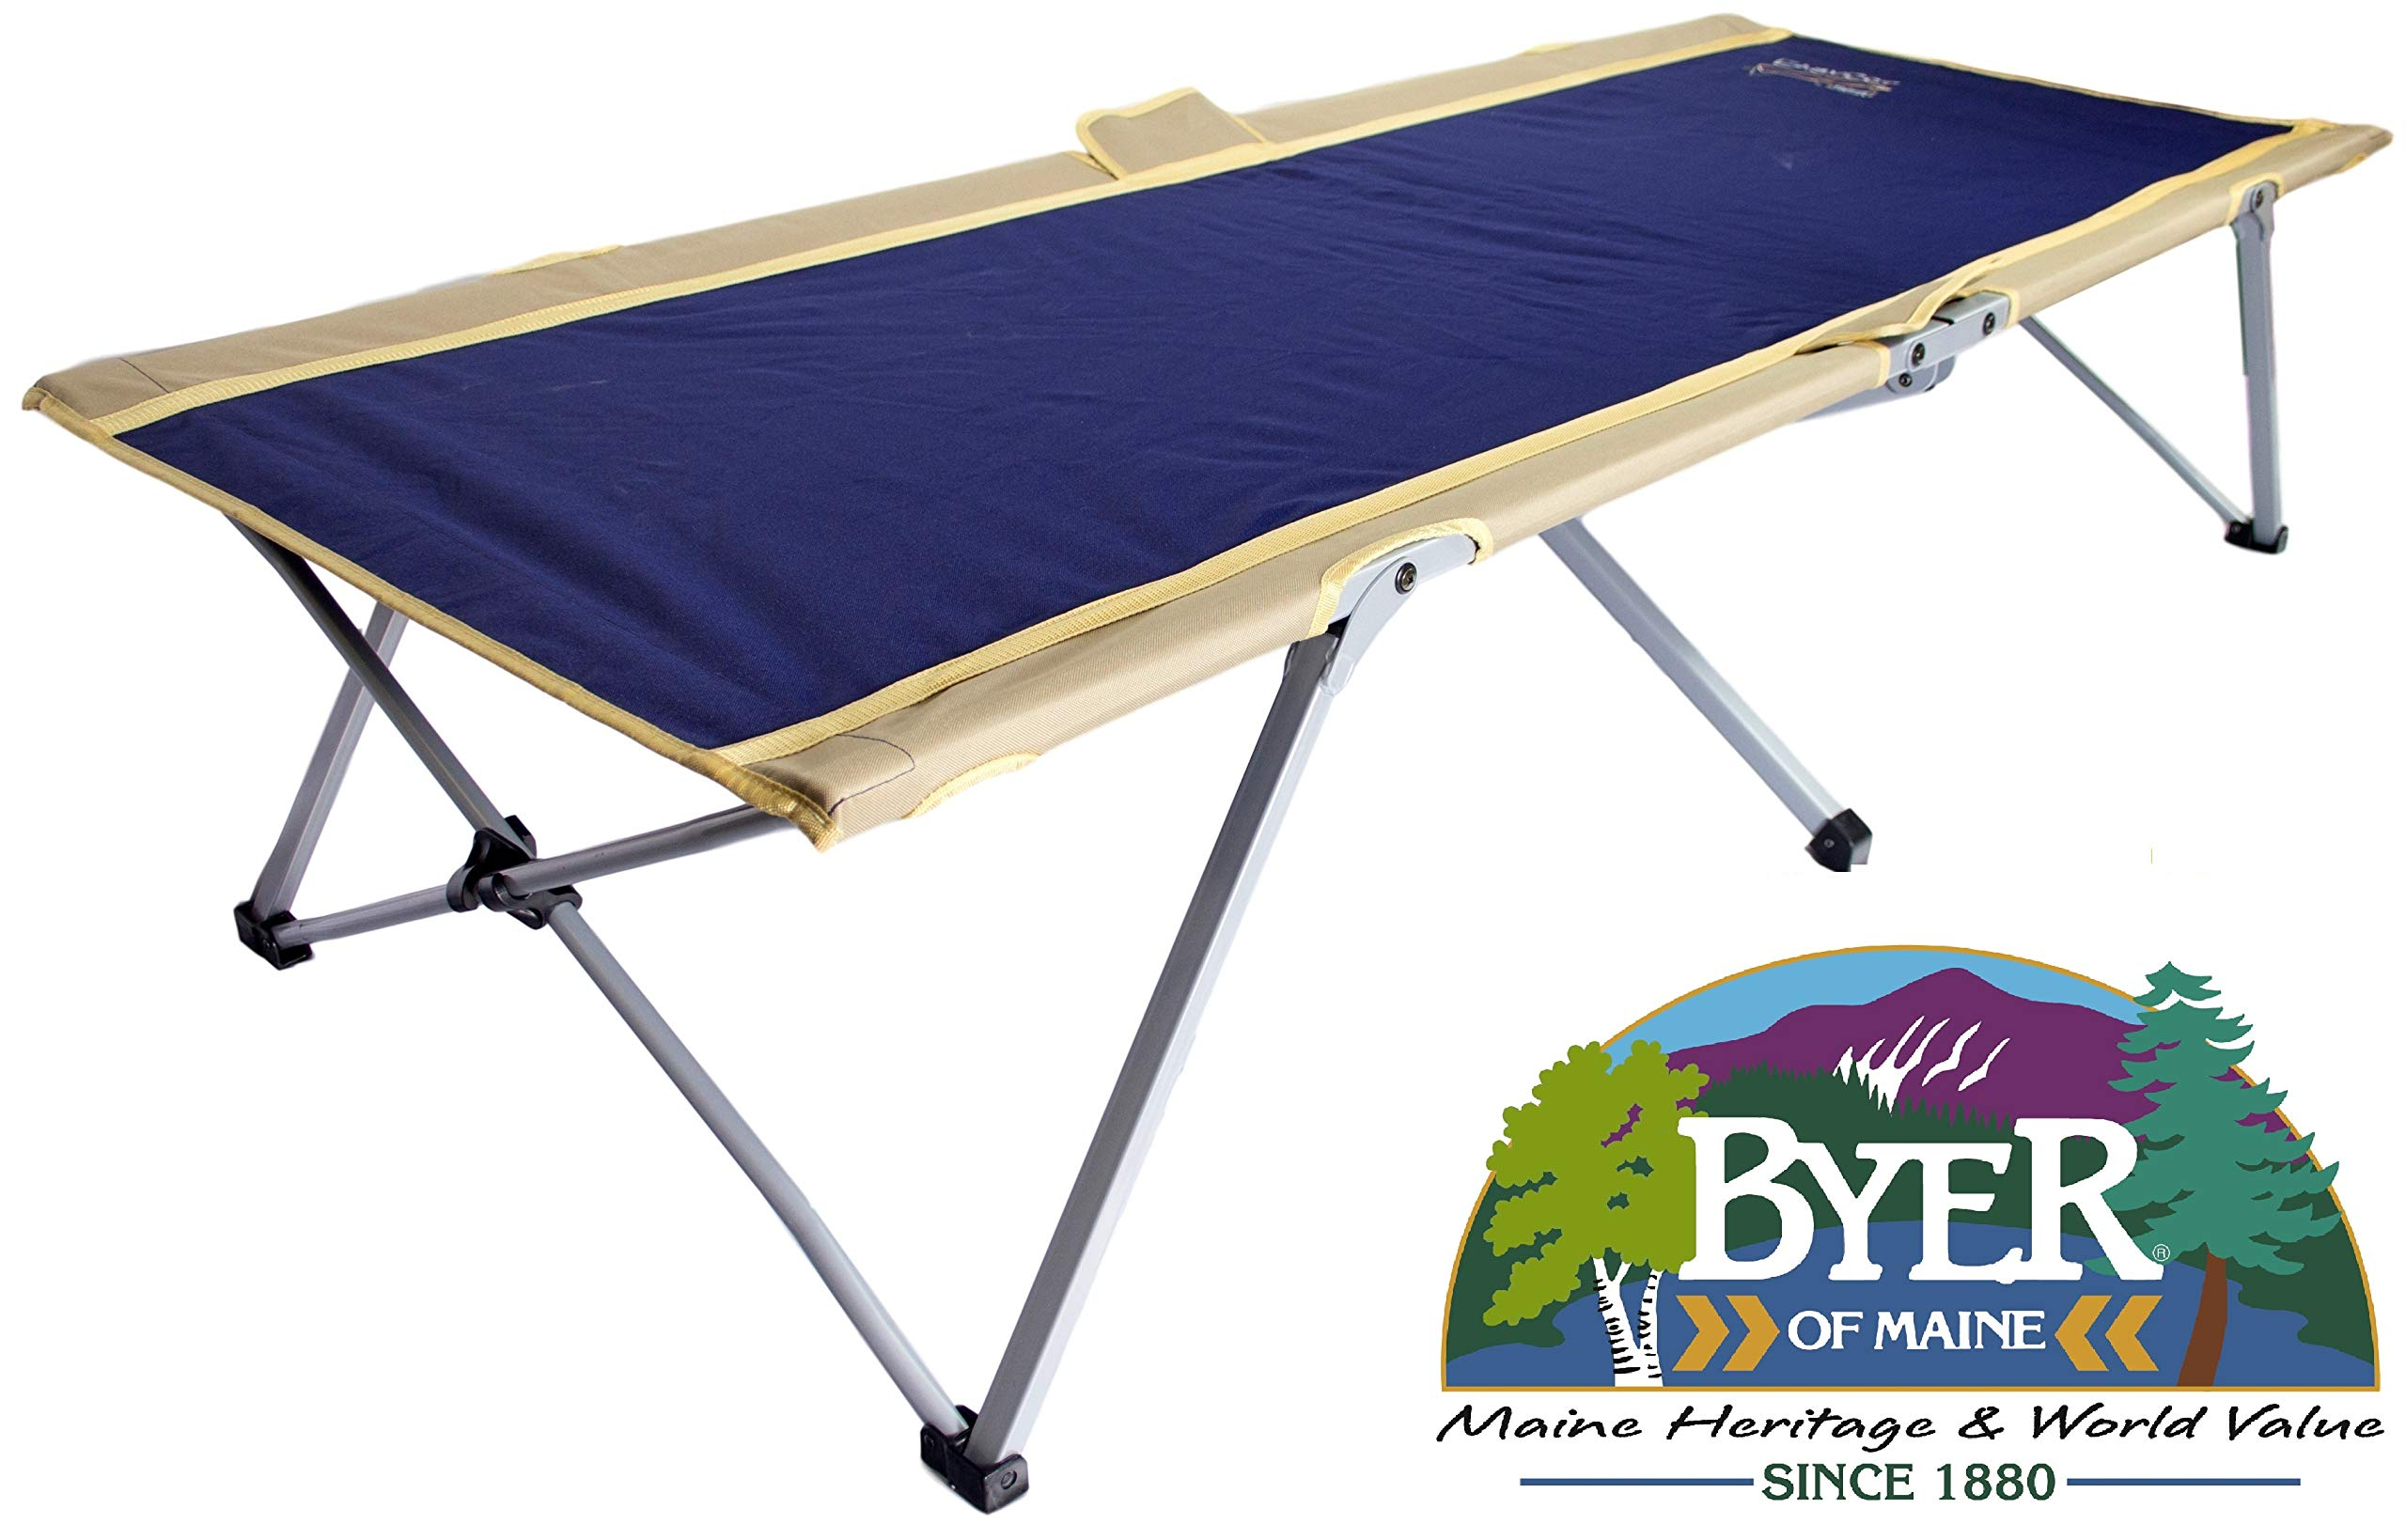 BYER OF MAINE Easy Cot, Extra Large, 78''L X 31''W X 18'', Holds 330lbs, Easy to assemble, Ideal for guest bed, Camp Cots for Adults, Folding Cot, Cot for Sleeping, Comes with Travel Bag, Single by BYER OF MAINE